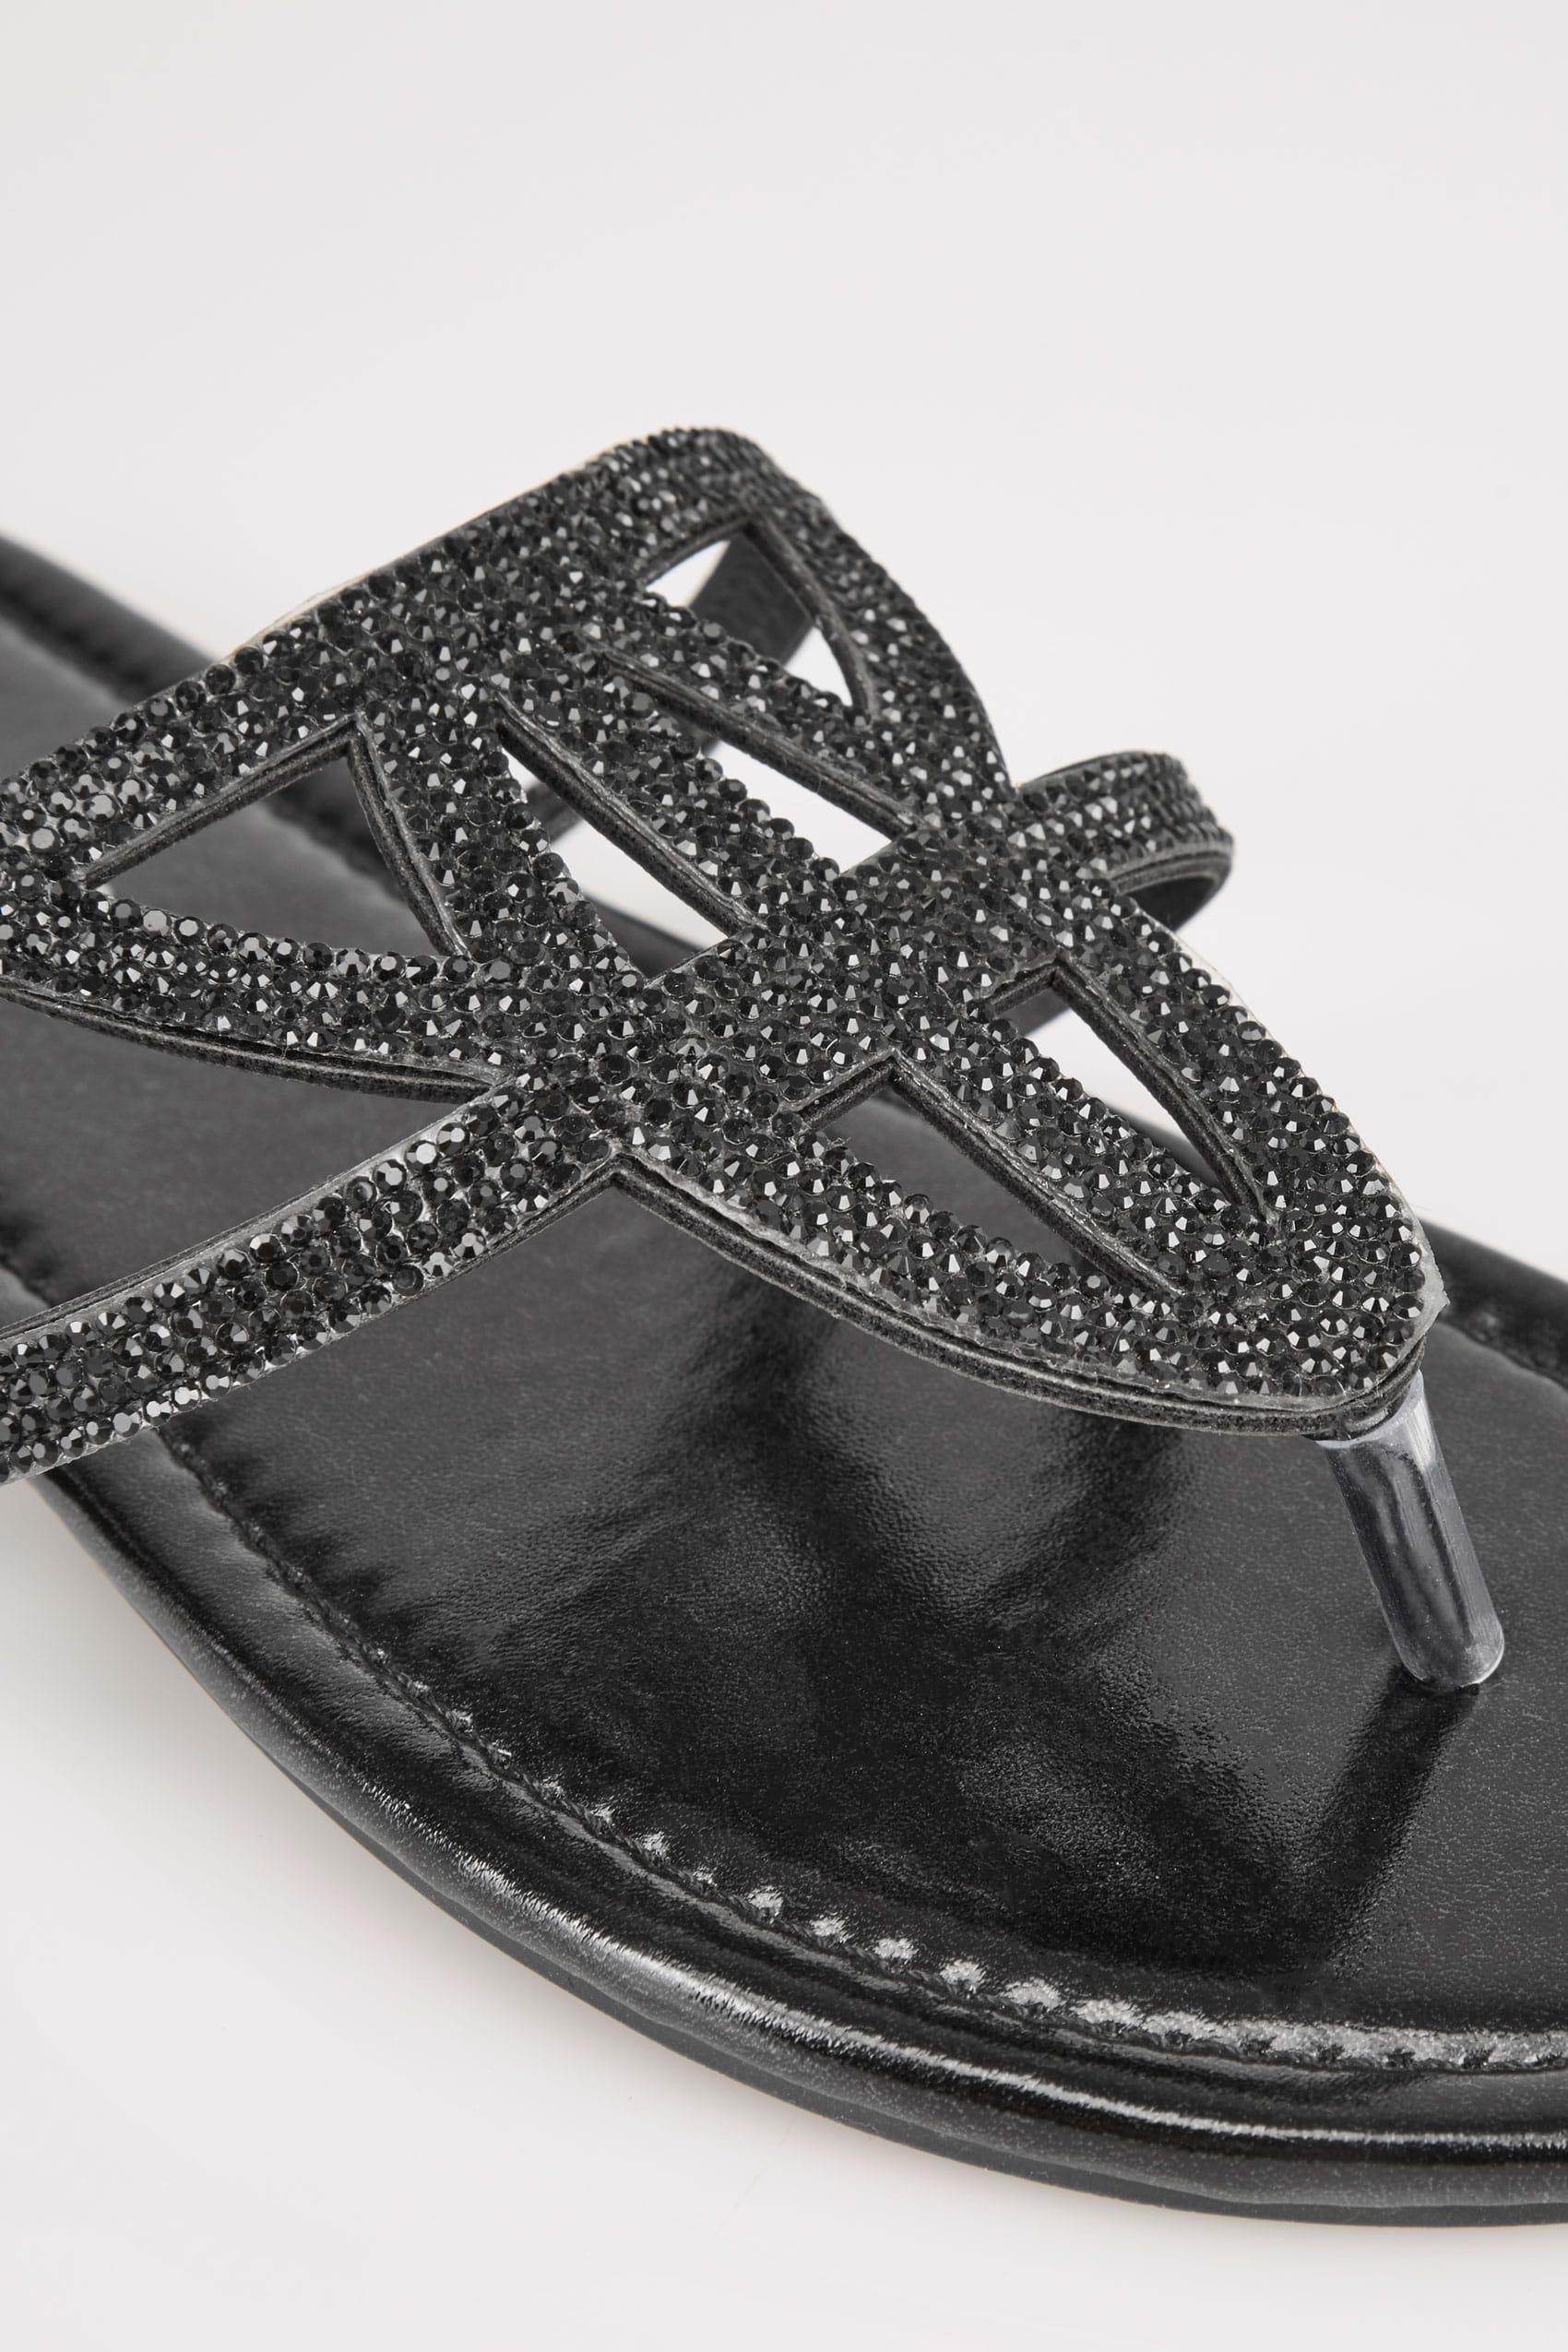 Rooms: Black Diamante Sandals In EEE Fit